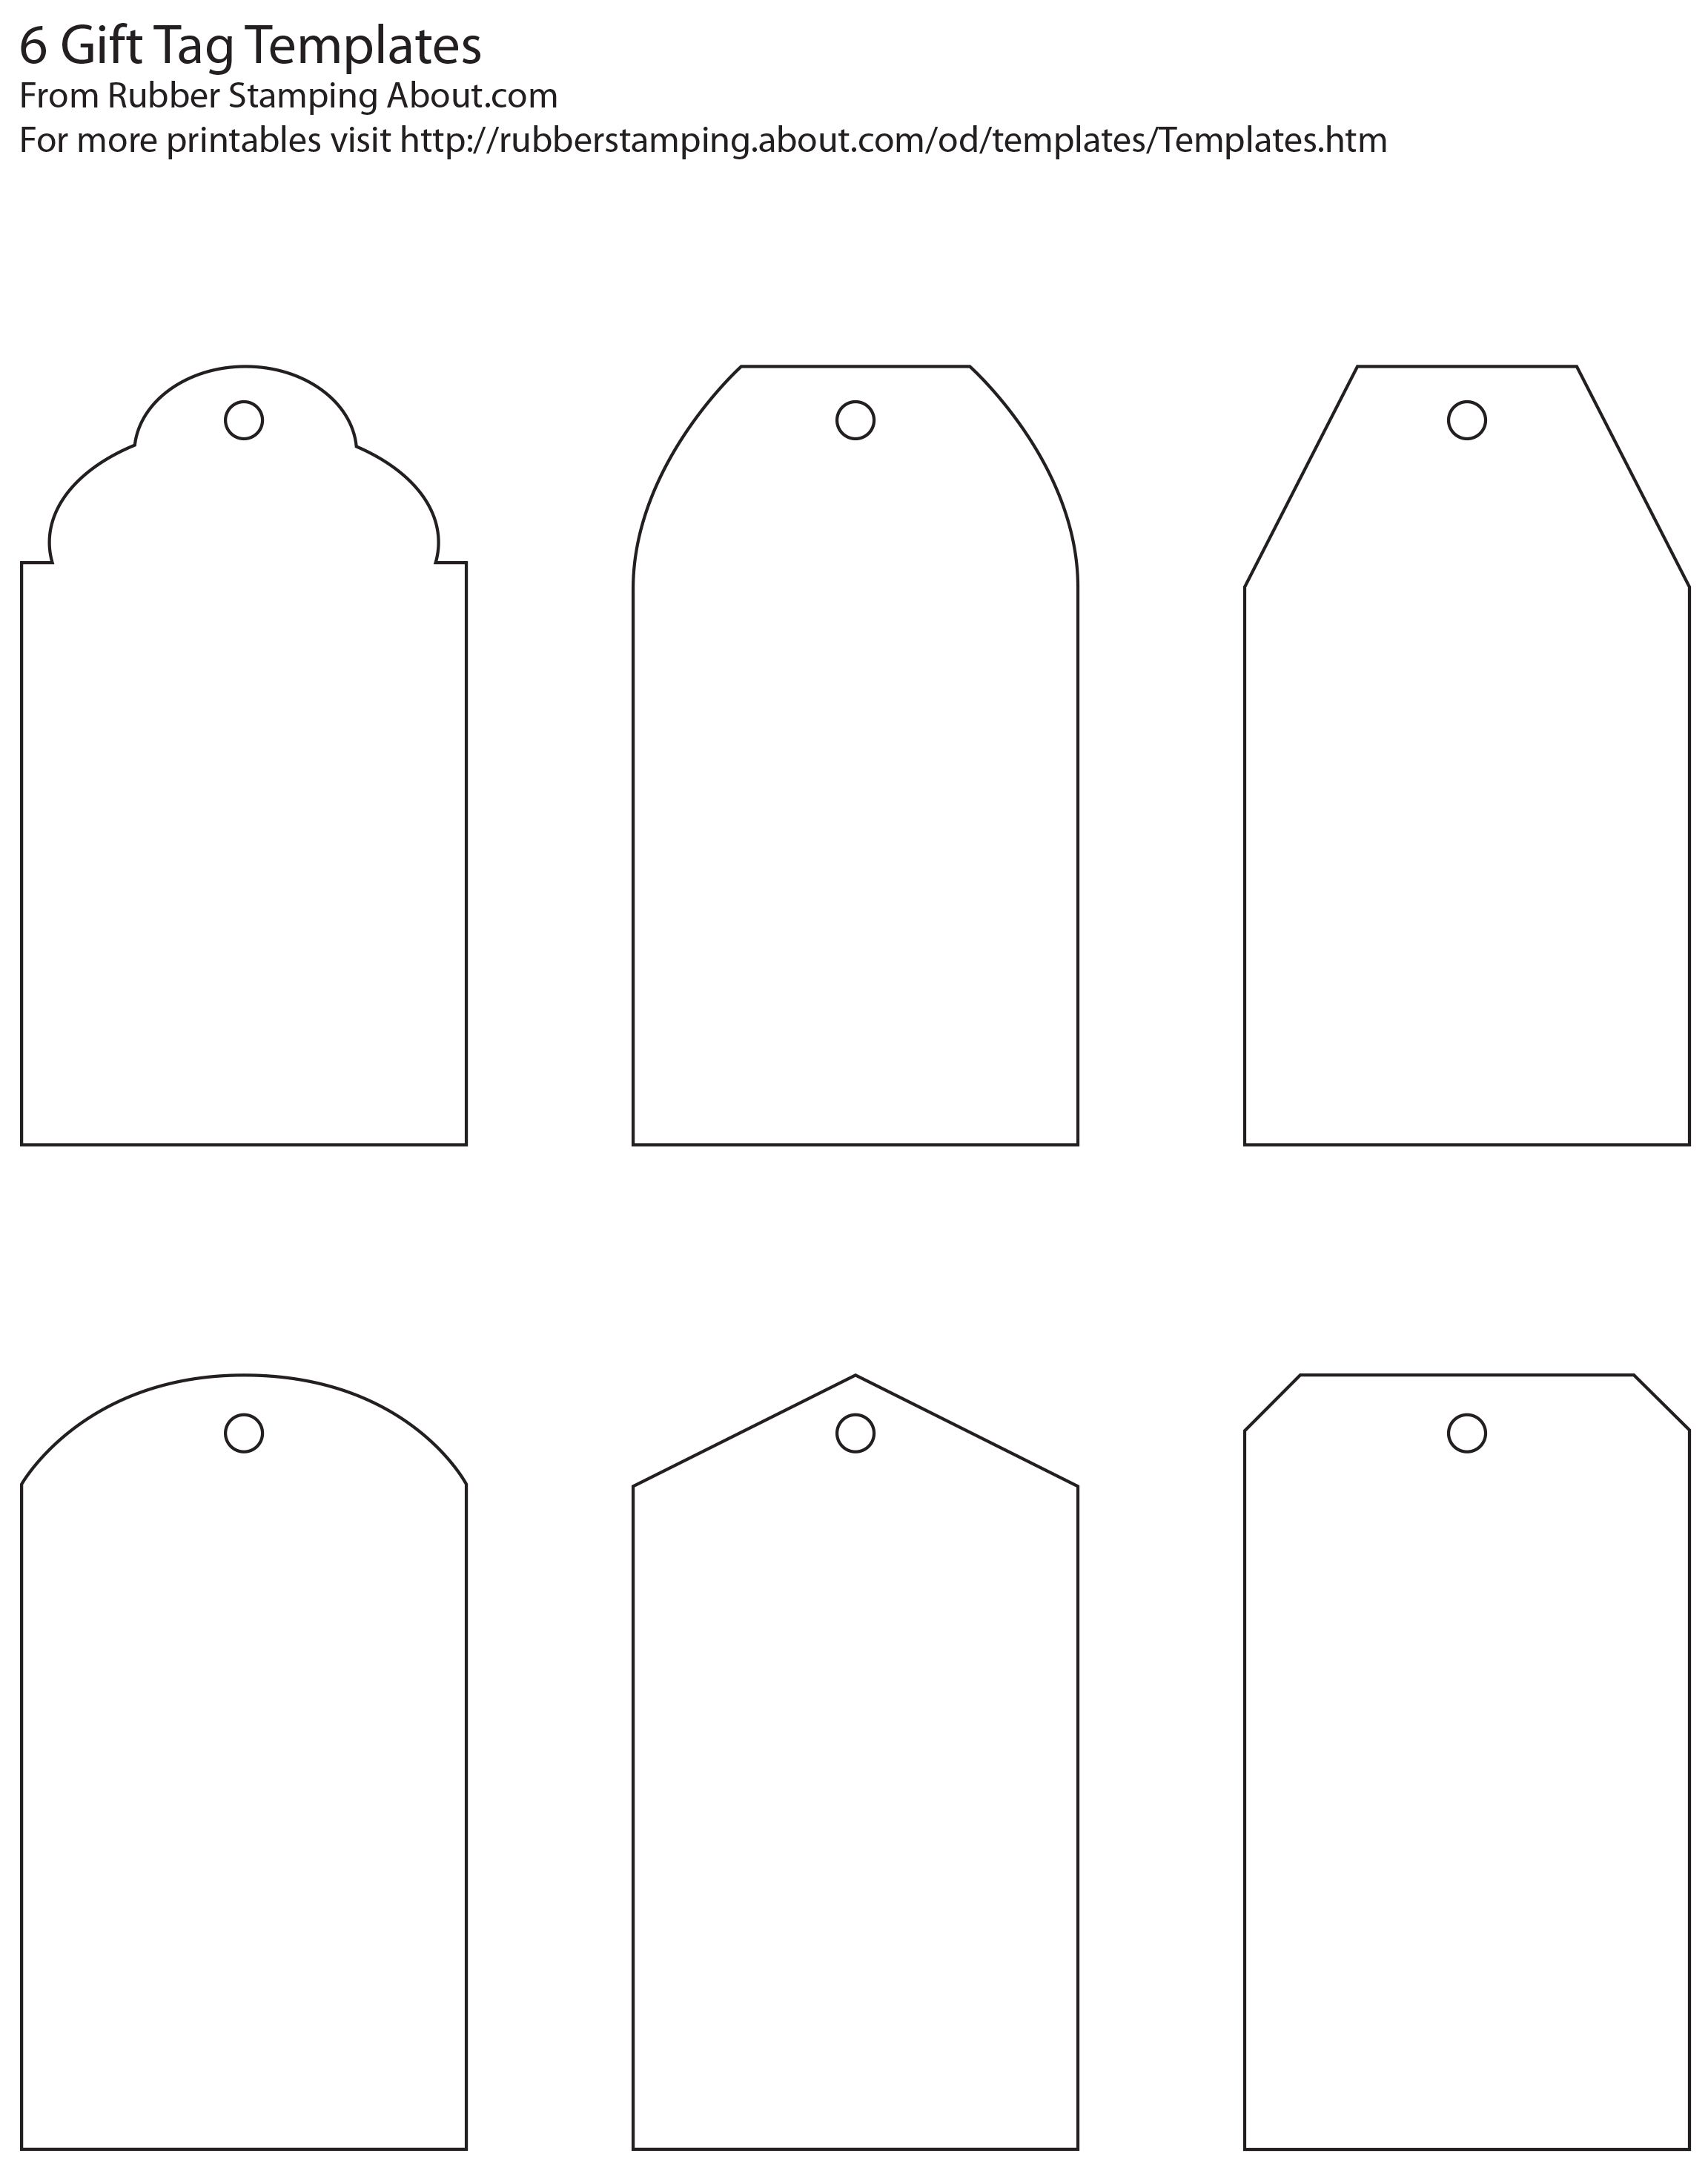 Gift Template Printable from i.pinimg.com